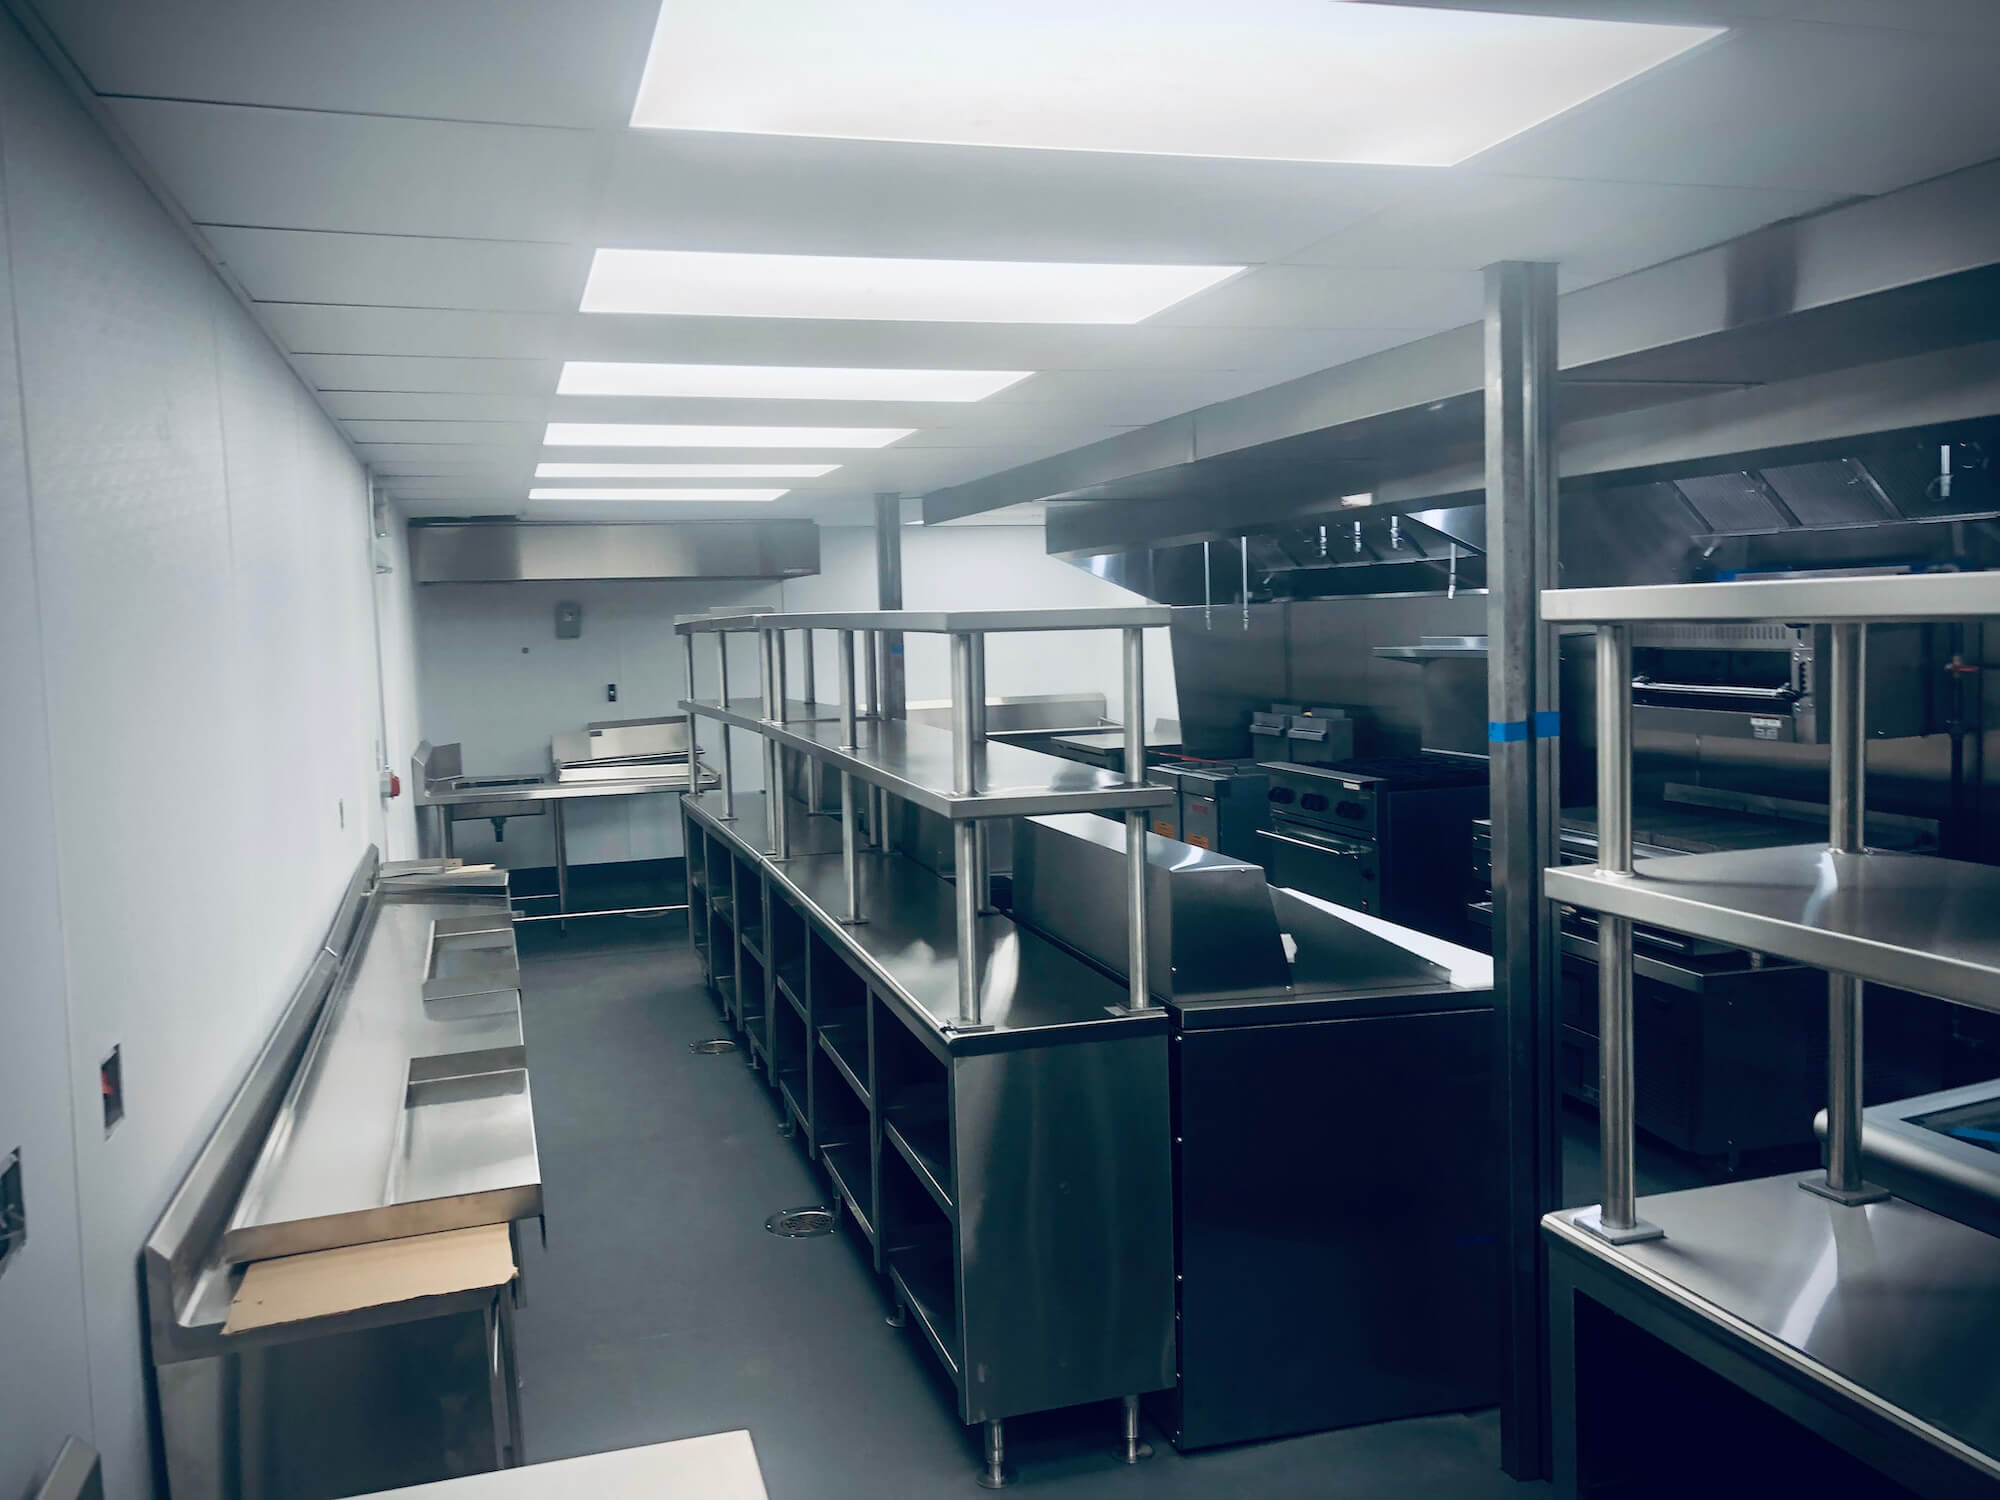 shipping container kitchen interior